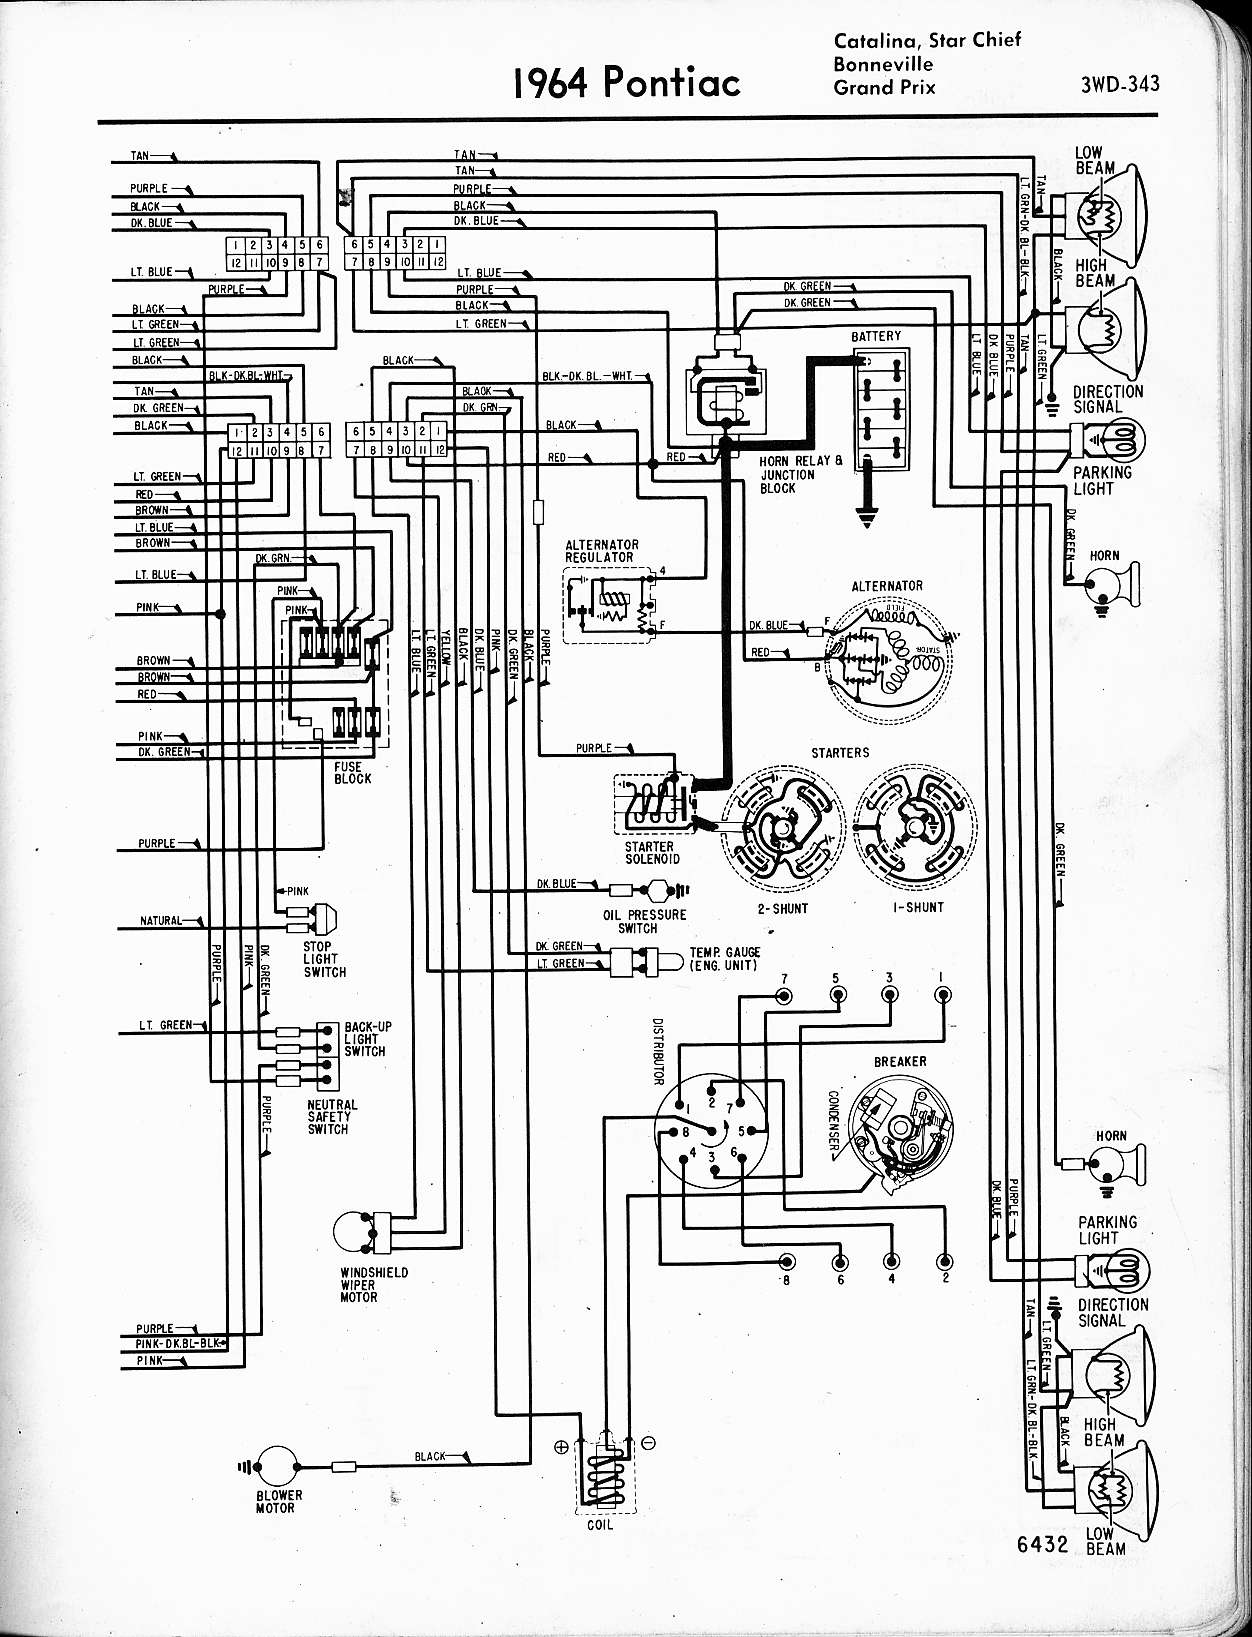 MWire5765 343 wallace racing wiring diagrams pontiac gto wiring diagram at readyjetset.co